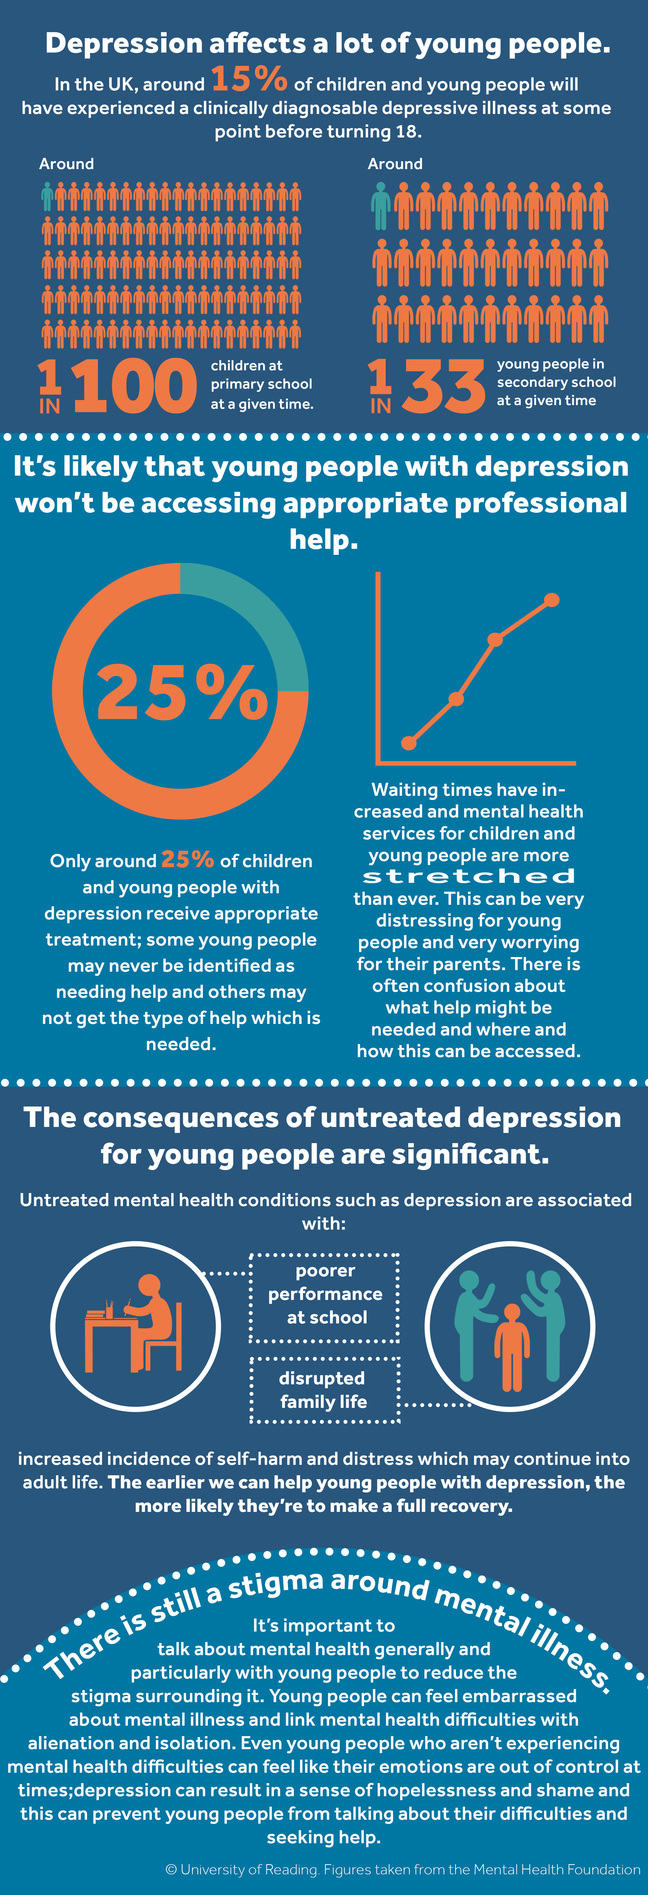 **Depression affects a lot of young people.** In the UK, around 15% of children and young people will have experienced a clinically diagnosable depressive illness at some point before turning 18 (around 1 in 100 children at primary school and 1 in 33 young people in secondary school at a given time).  **It's likely that young people with depression won't be accessing appropriate professional help.** Only around 25% of children and young people with depression receive appropriate treatment; some young people may never be identified as needing help and others may not get the type of help which is needed. Waiting times have increased and mental health services for children and young people are more stretched than ever. This can be very distressing for young people and very worrying for their parents. There is often confusion about what help might be needed and where and how this can be accessed. **The consequences of untreated depression for young people are significant.** Untreated mental health conditions such as depression are associated with poorer performance at school, disrupted family life, increased incidence of self-harm and distress which may continue into adult life. The earlier we can help young people with depression, the more likely they are to make a full recovery. **There is still a stigma around mental illness.** It's important to talk about mental health generally and particularly with young people to reduce the stigma surrounding it. Young people can feel embarrassed about mental illness and link mental health difficulties with alienation and isolation. Even young people who aren't experiencing mental health difficulties can feel like their emotions are out of control at times; depression can result in a sense of hopelessness and shame and this can prevent young people from talking about their difficulties and seeking help.  We're extremely keen to develop this programme to increase public knowledge around depression in young people, and we wanted to